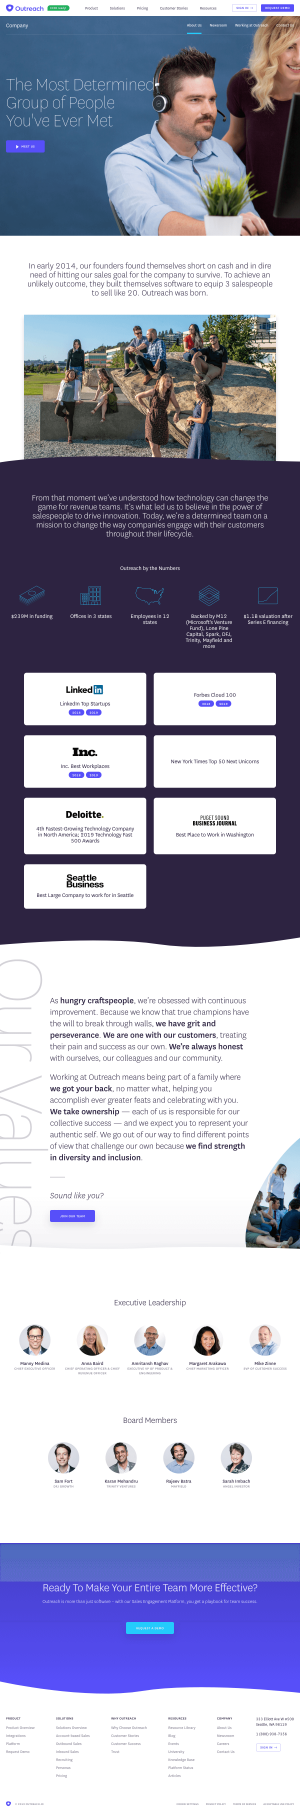 Outreach – About Us page